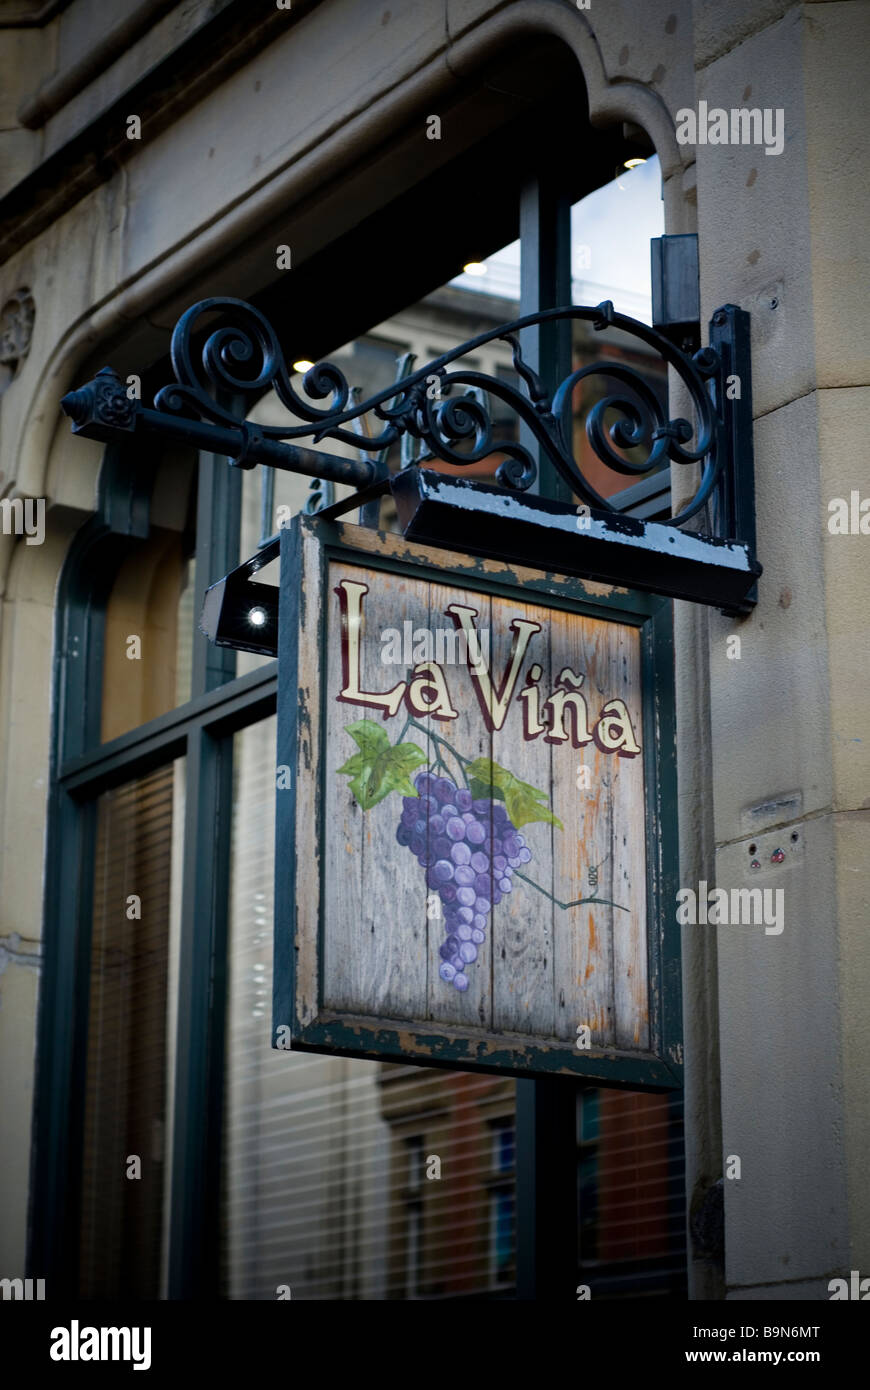 La Vina Spanish restaurant and wine bar on Deansgate Manchester city centre UK - Stock Image